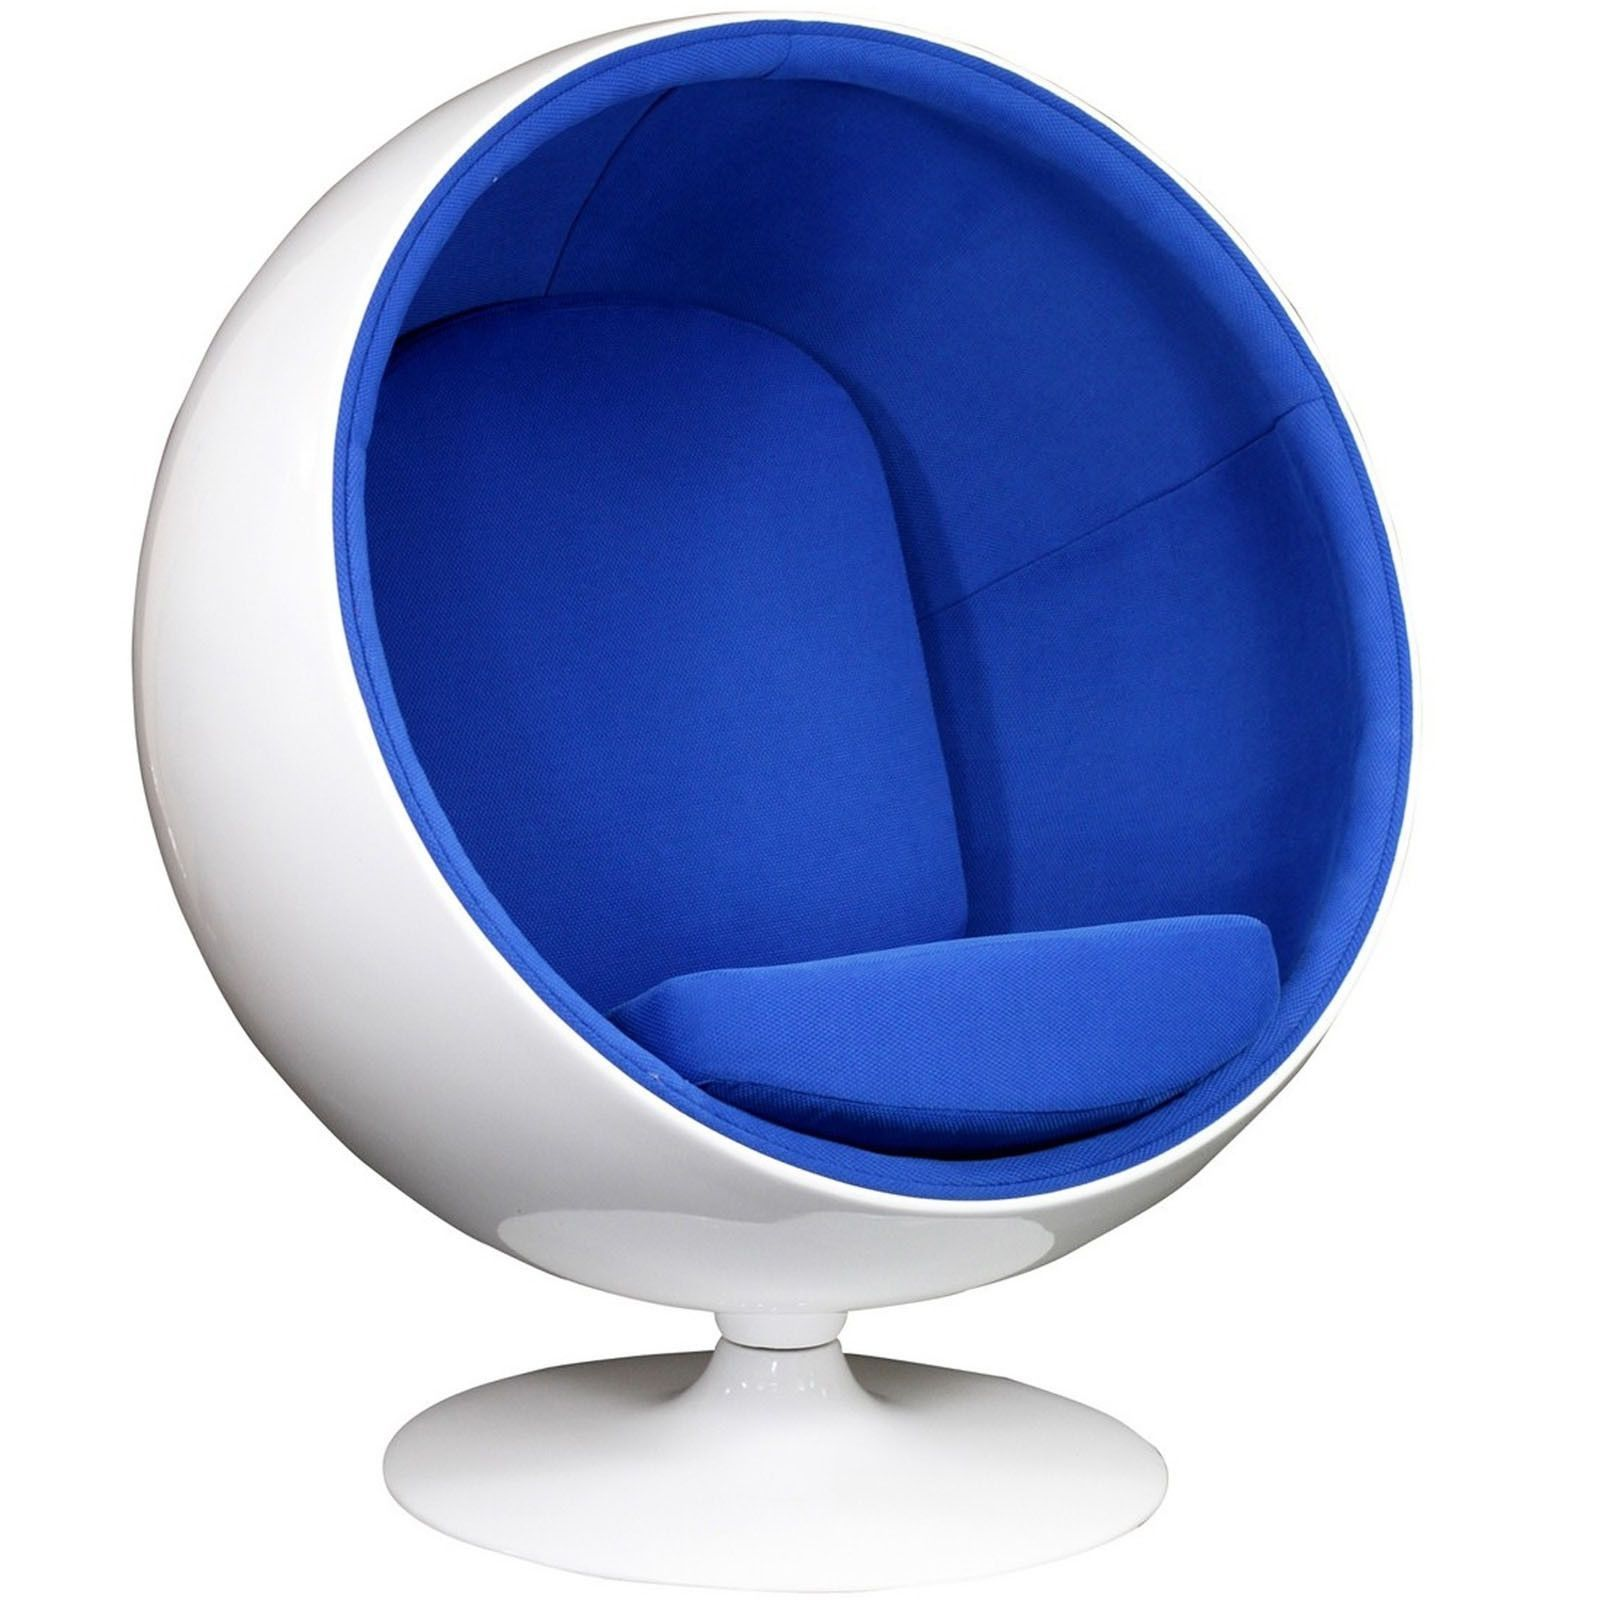 This retro lounge chair resembles a space age pod creating a spark